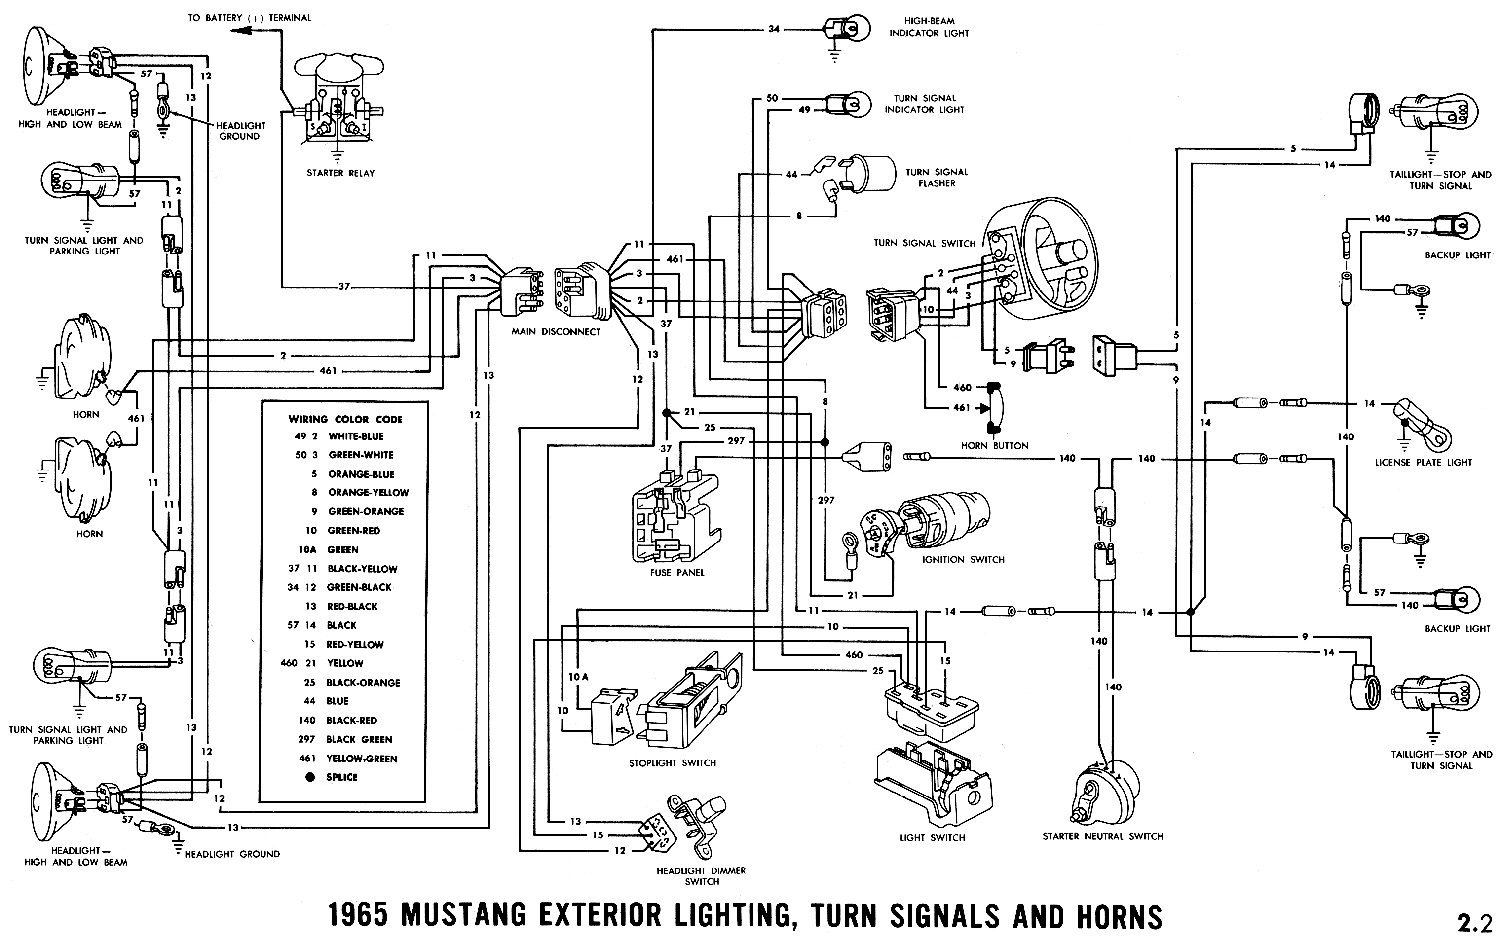 imd_566] 65 mustang engine diagram | ground-carbon wiring diagram value |  ground-carbon.iluoghicomunisullacultura.it  ground-carbon.iluoghicomunisullacultura.it